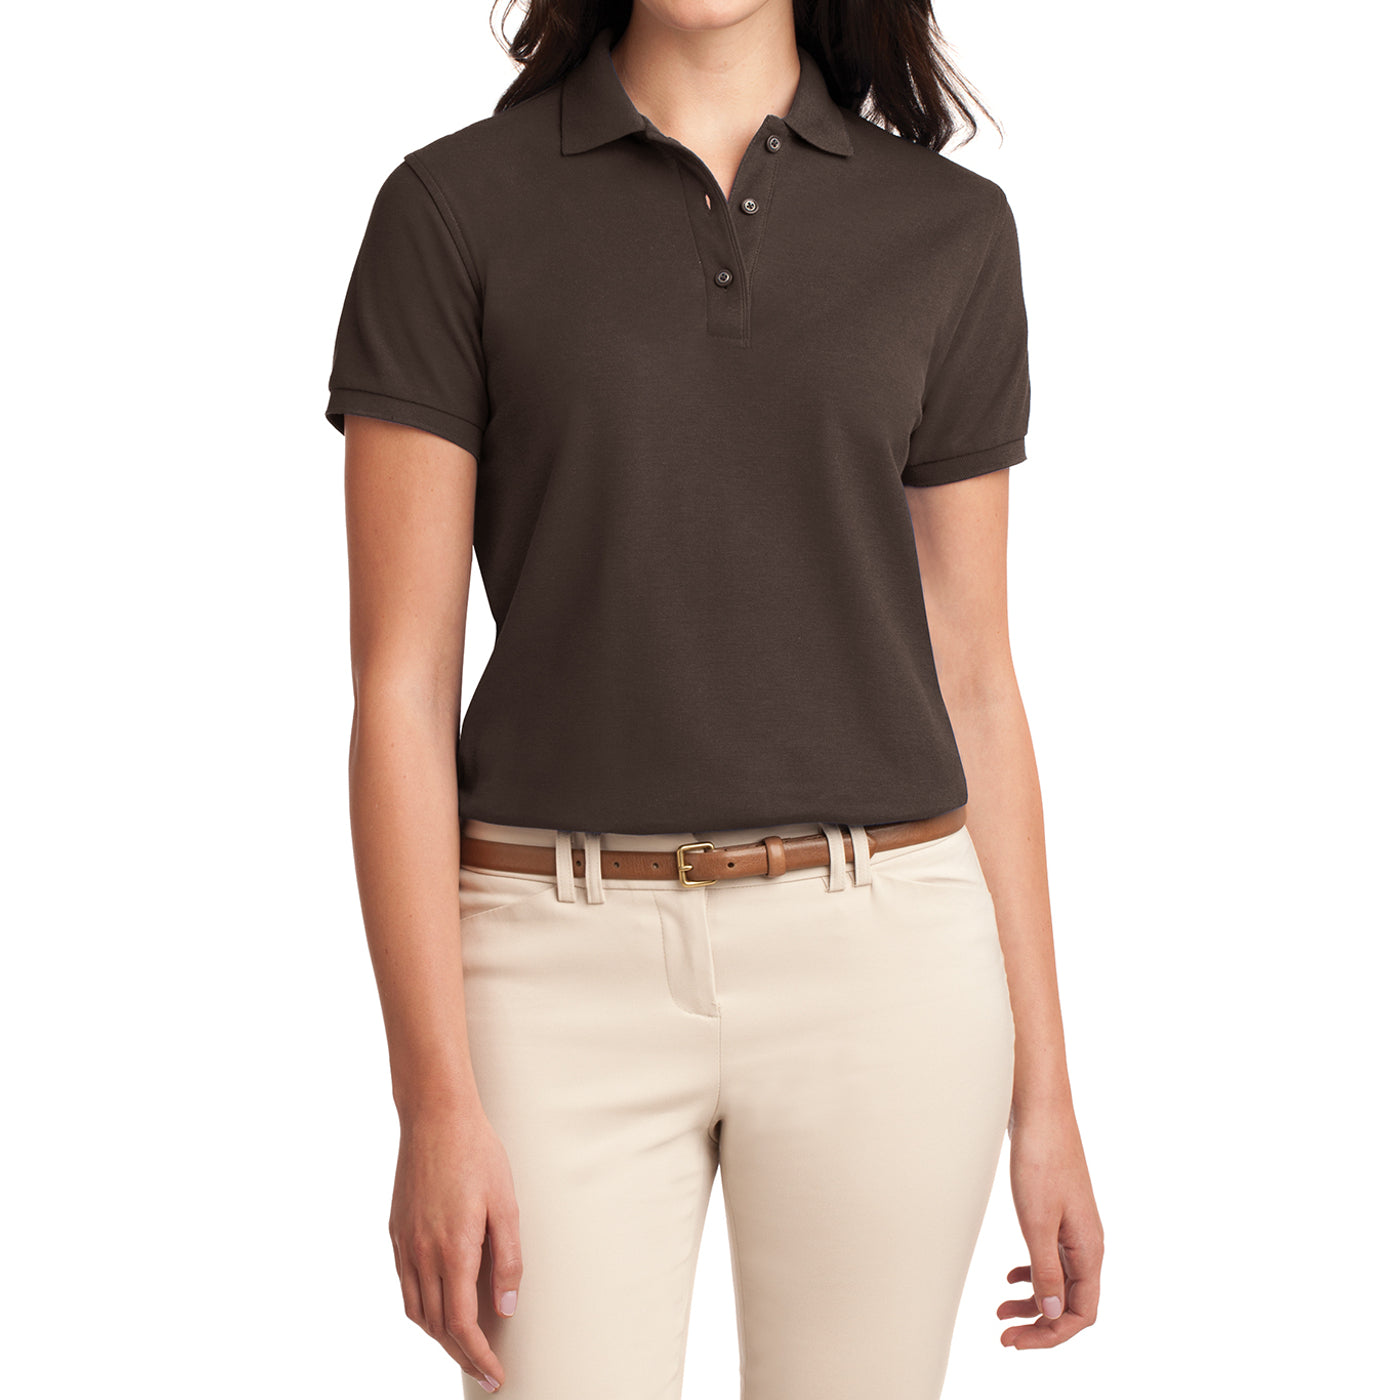 Womens Silk Touch Classic Polo Shirt - Coffee Bean - Front